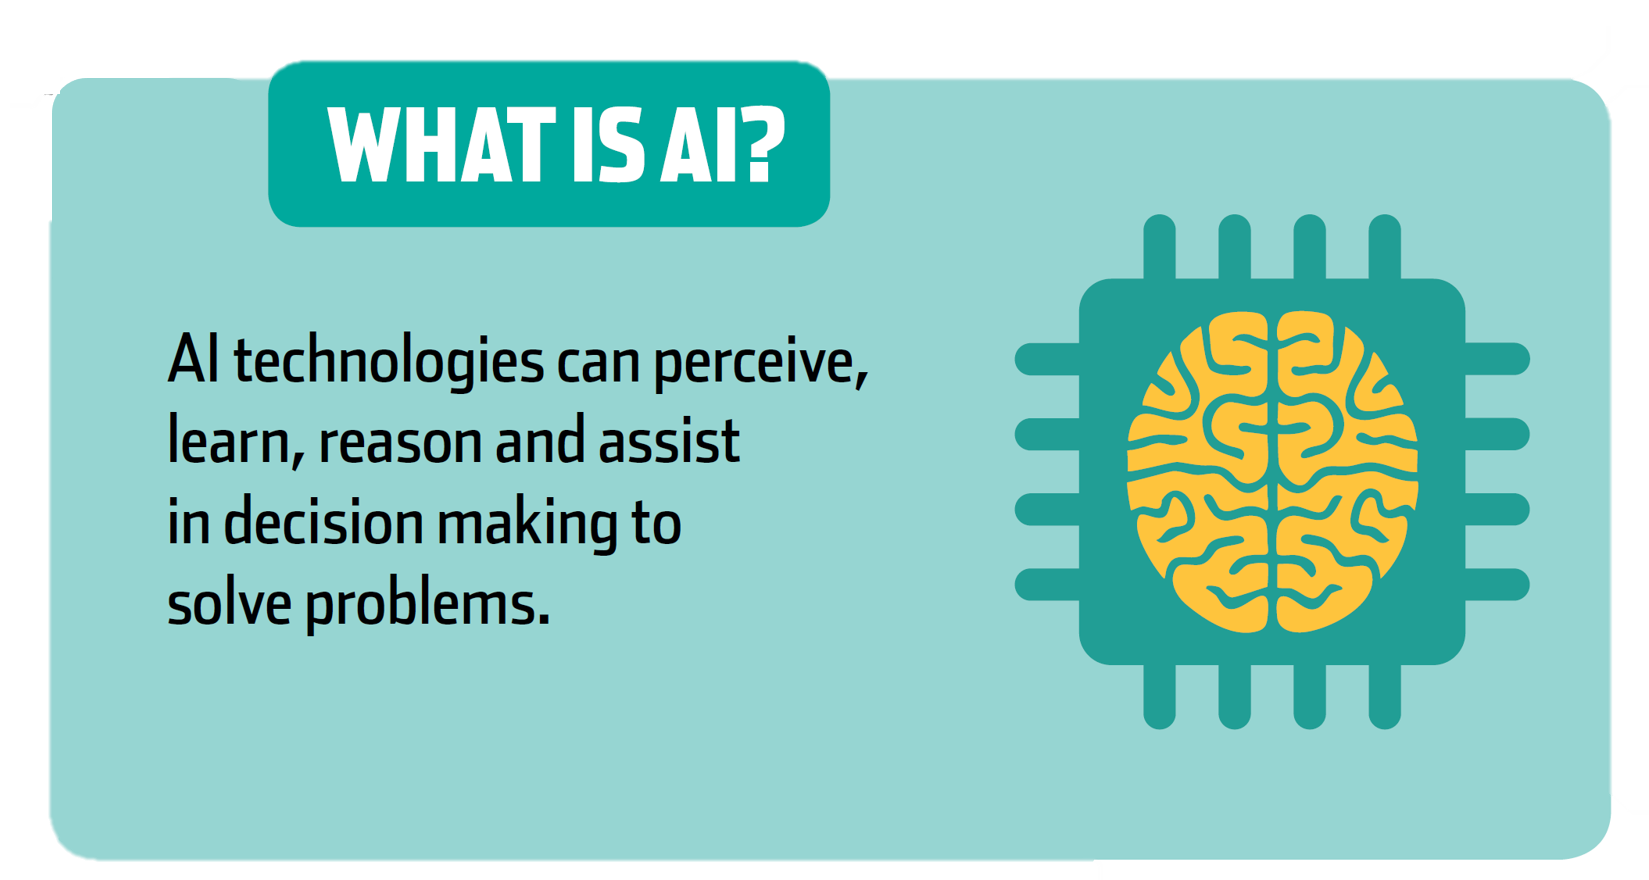 Graphic showing what AI is. AI technology can perceive, learn, reason and assist in decision making to solve problems.